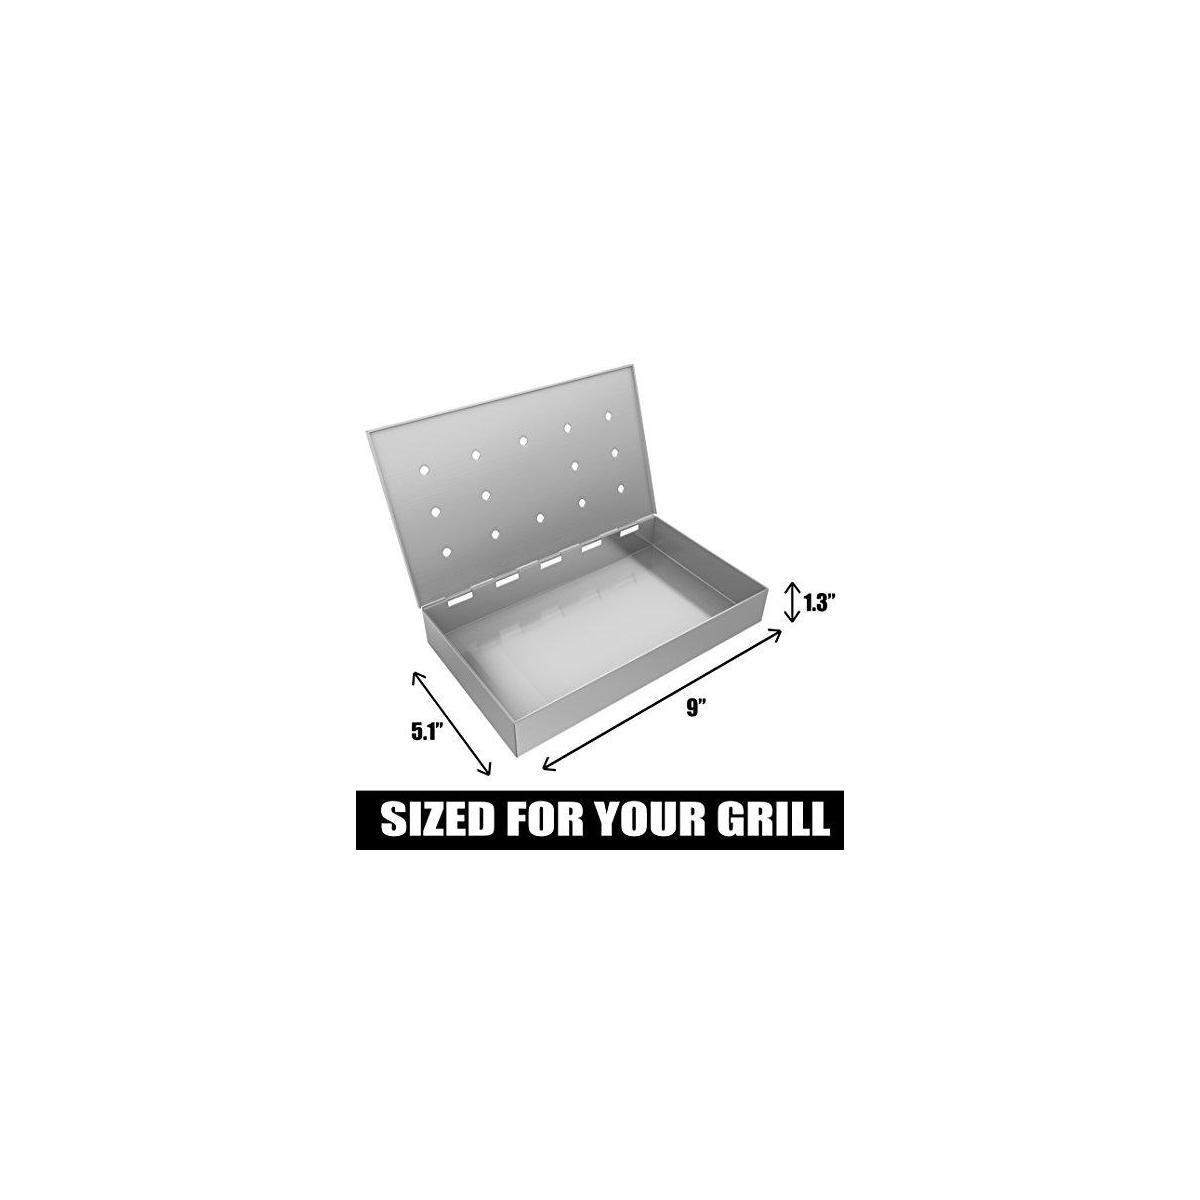 Pulled Pork Shredder Rakes + Smoker Box Maximum Wood Chip Capacity - 25% Thicker Stainless Steel Won't WARP - Charcoal & Gas Grill BBQ Meat Smoking Hinged Lid - Best Grilling Accessories